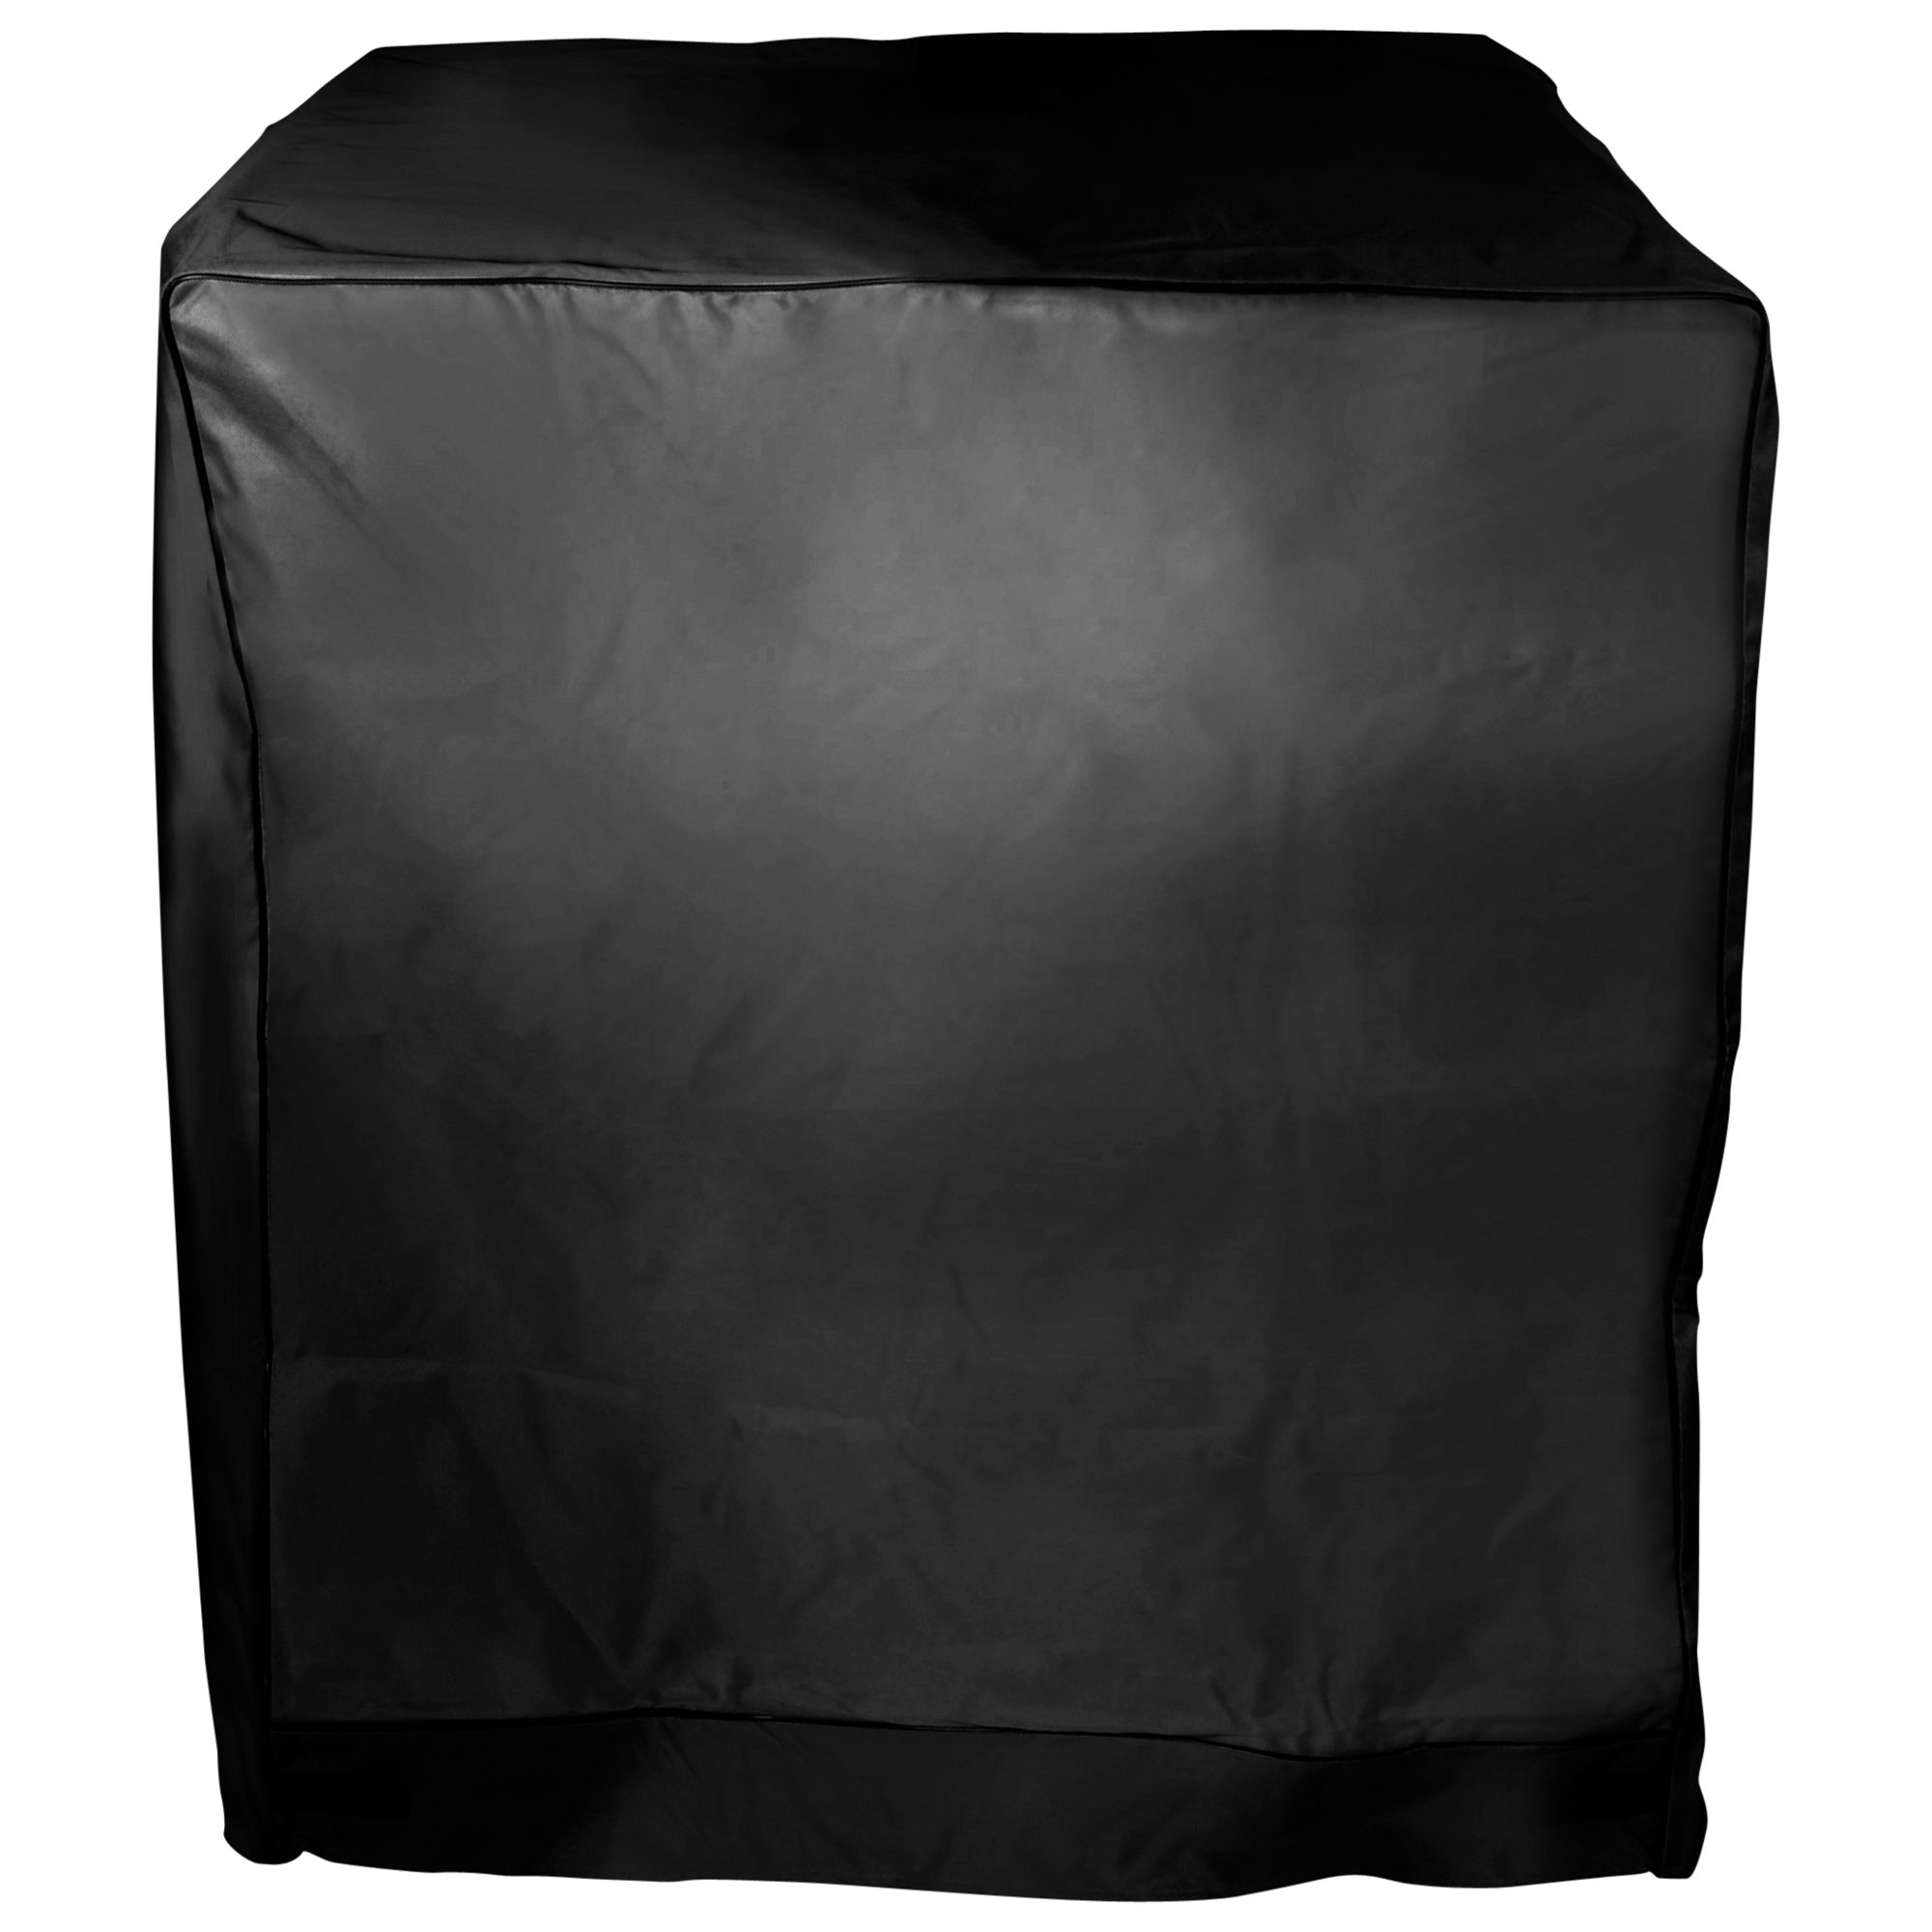 Leisuregrow Ziggy Barbecue Cover, H147 x W165 x D65cm